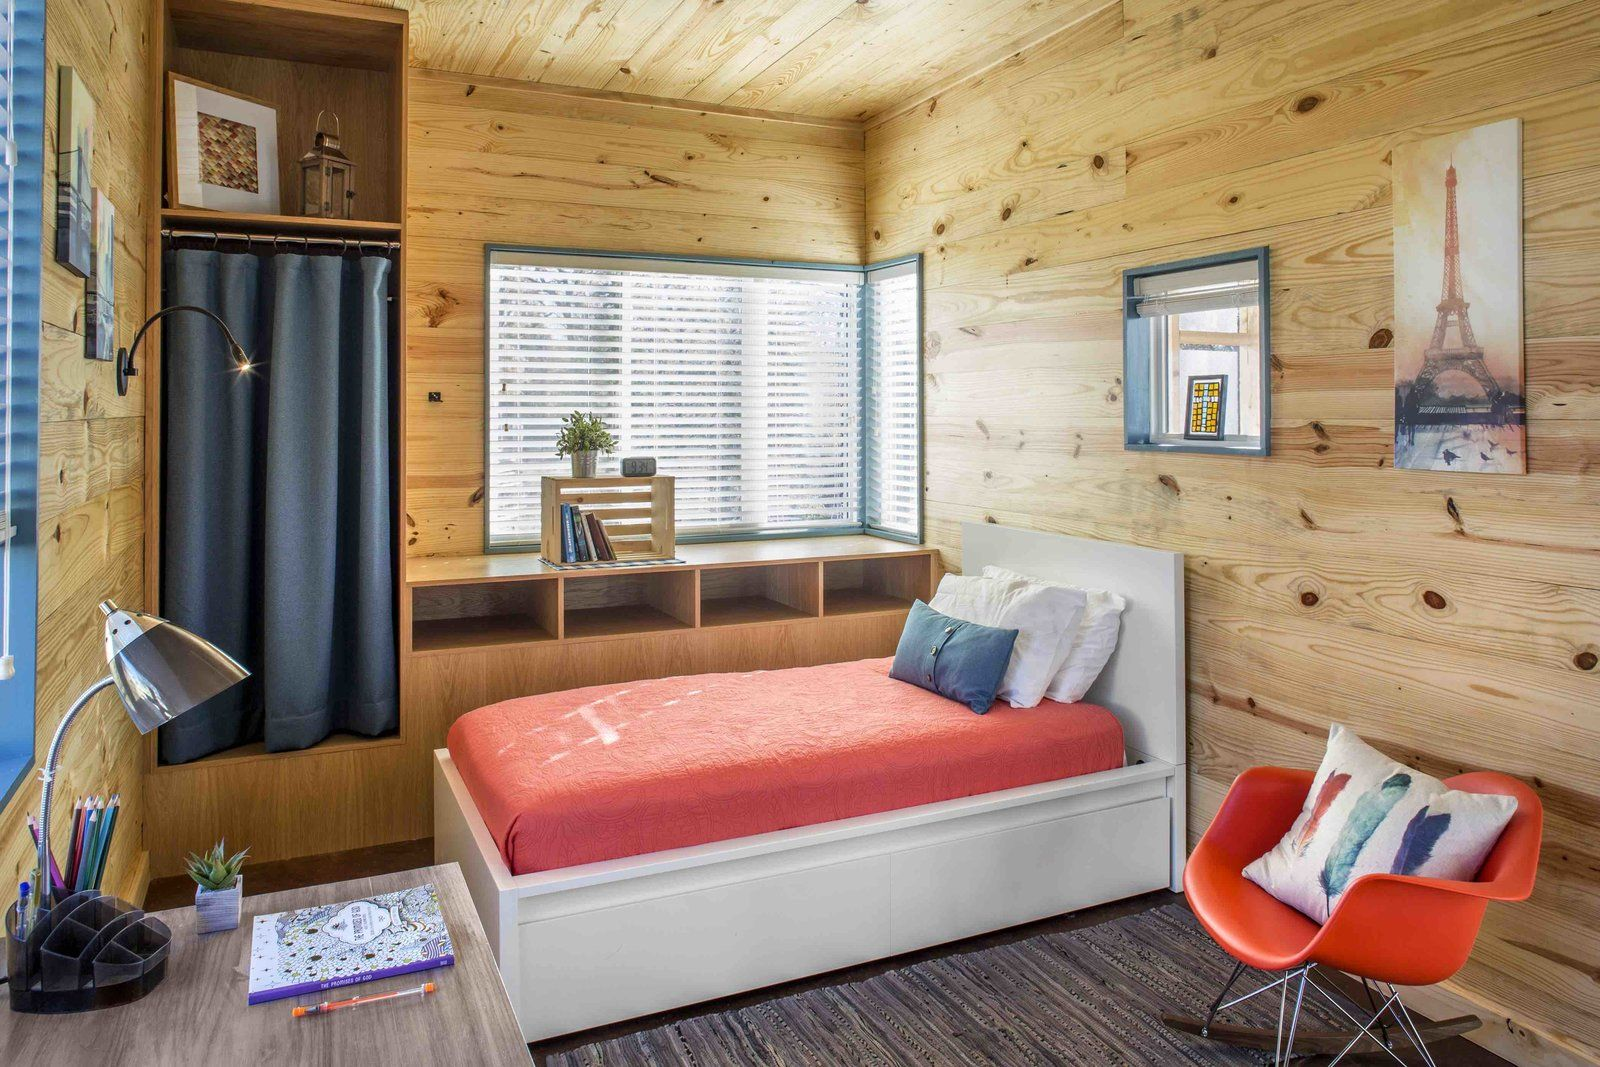 Austin Tackles Homelessness With Village Of Sustainable Tiny Homes Home Sustainable Home Tiny House Design